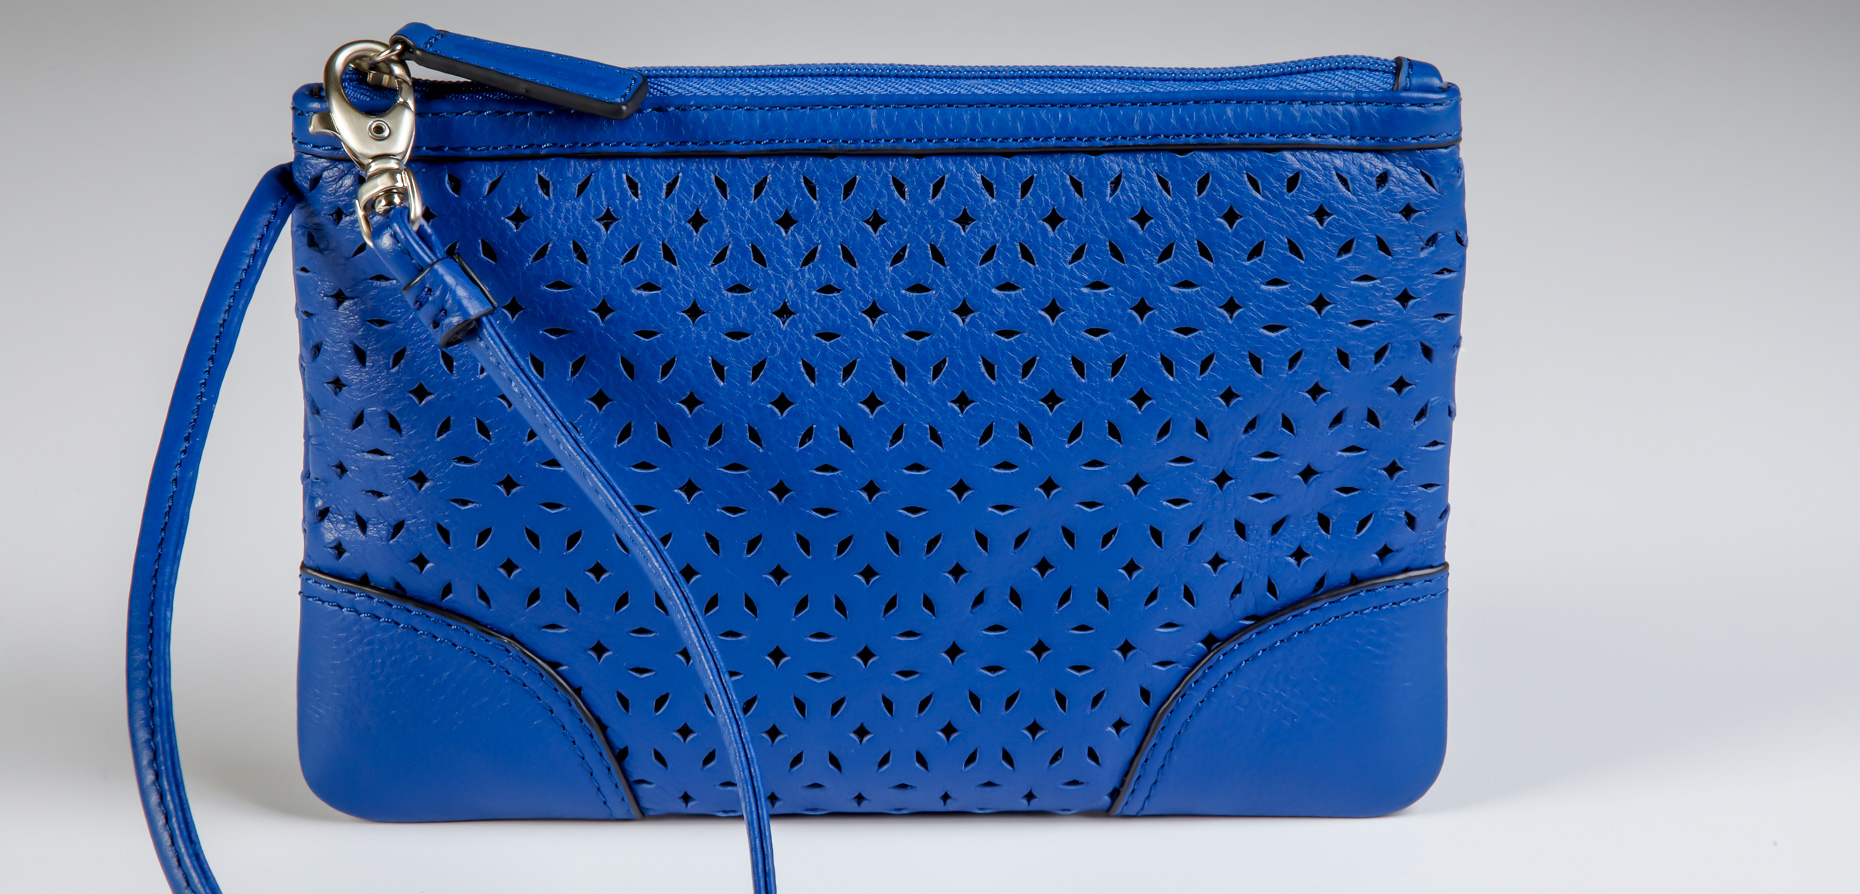 Michael Cushman Product Photography CO_MOTIF_ST-TROPEZ-POUCH-s1